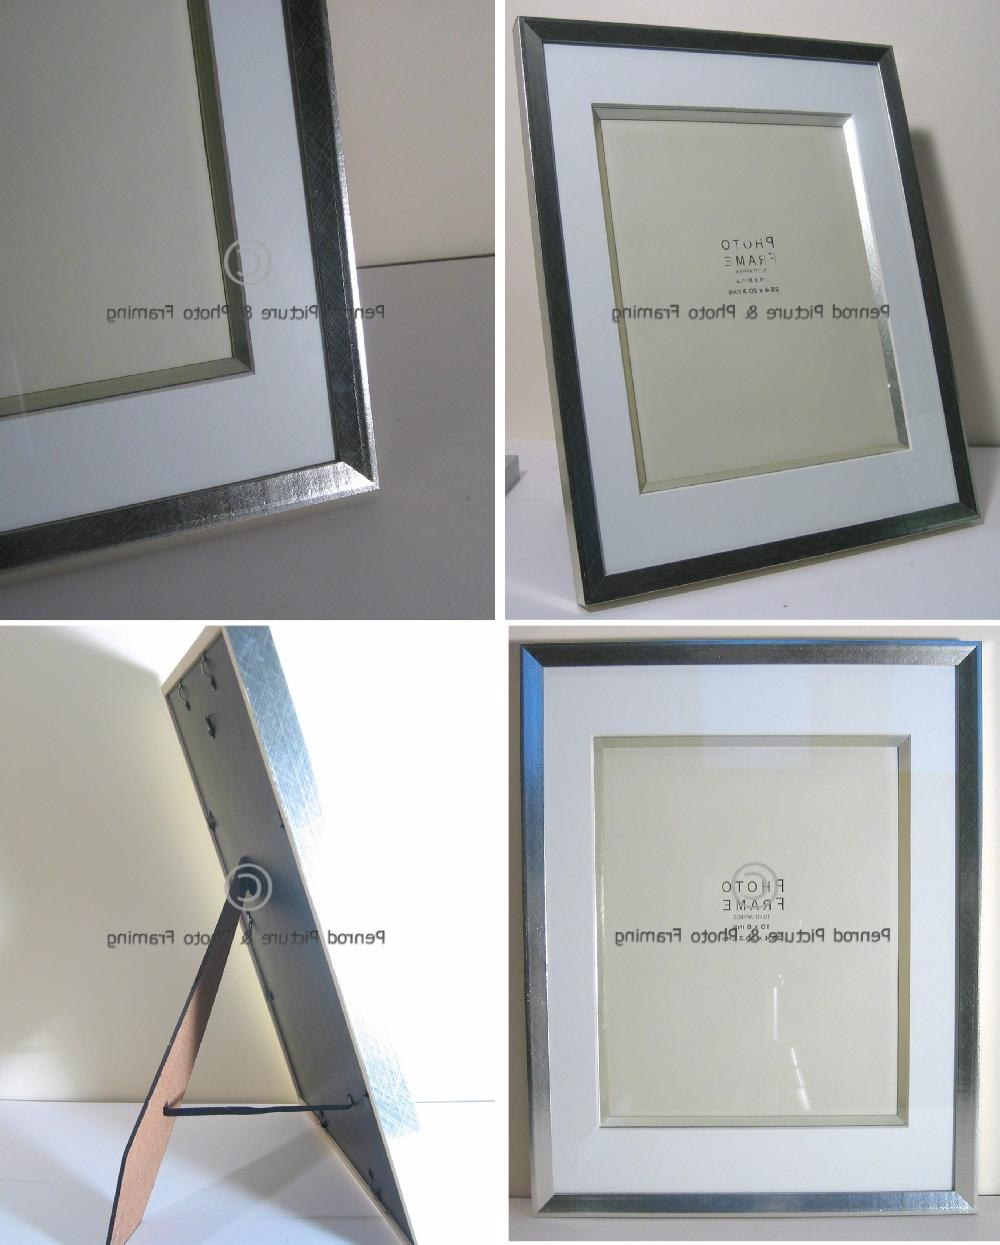 Top Quality Deep Frame for Wedding Pictures. Silver - 10 x 8 Opening